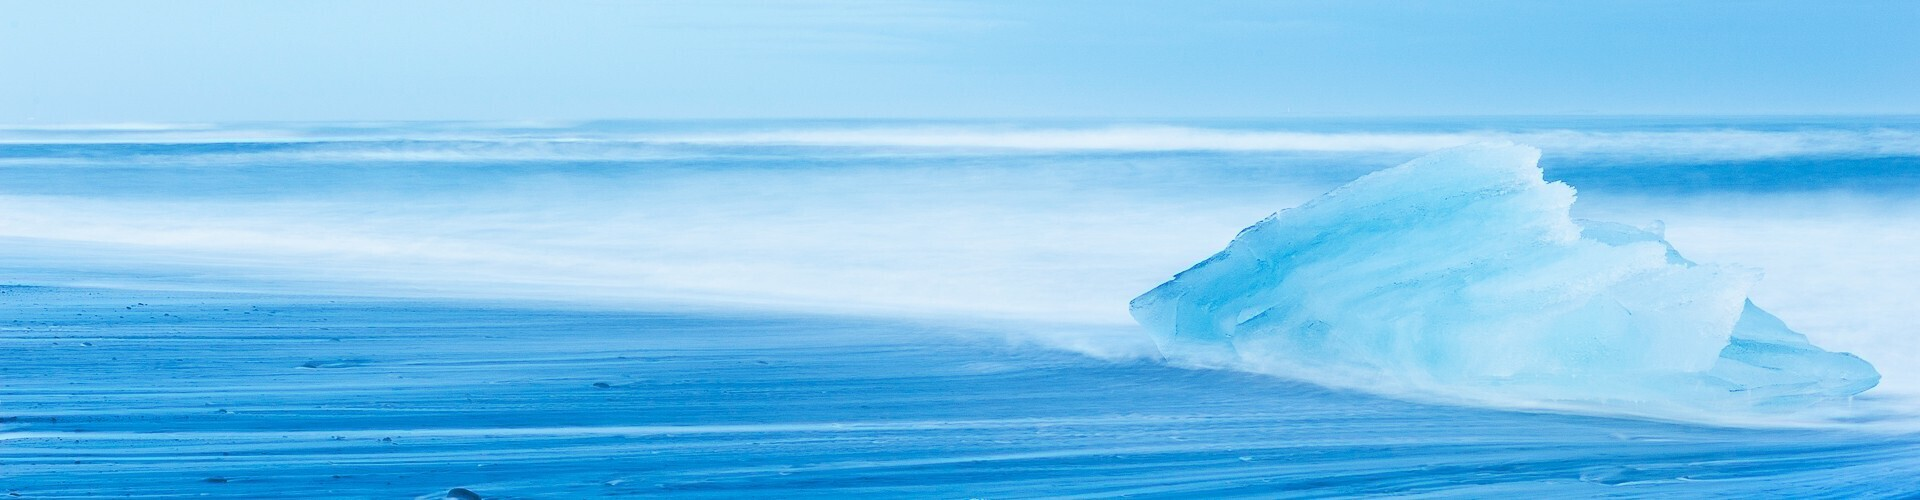 voyage photo islande greg gerault header